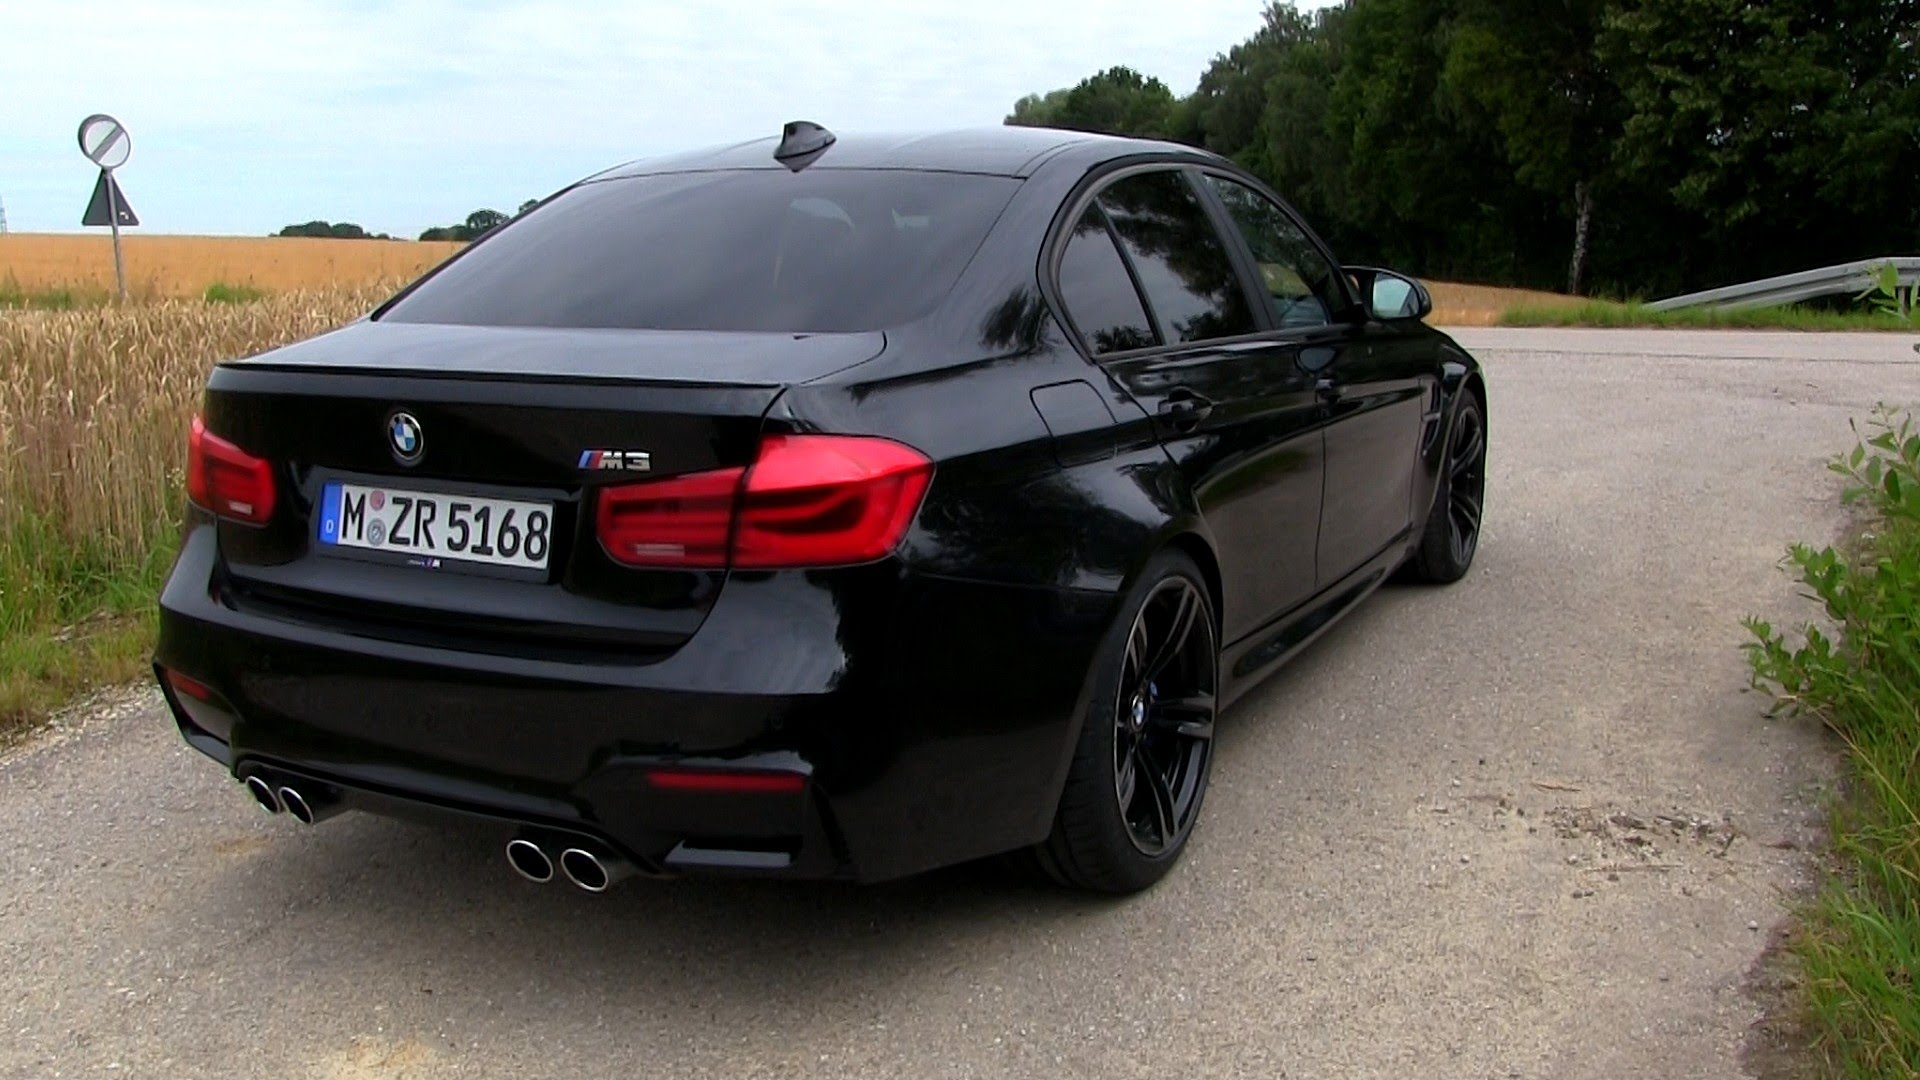 2016 BMW M3 F80 Facelift (431 HP) TEST DRIVE